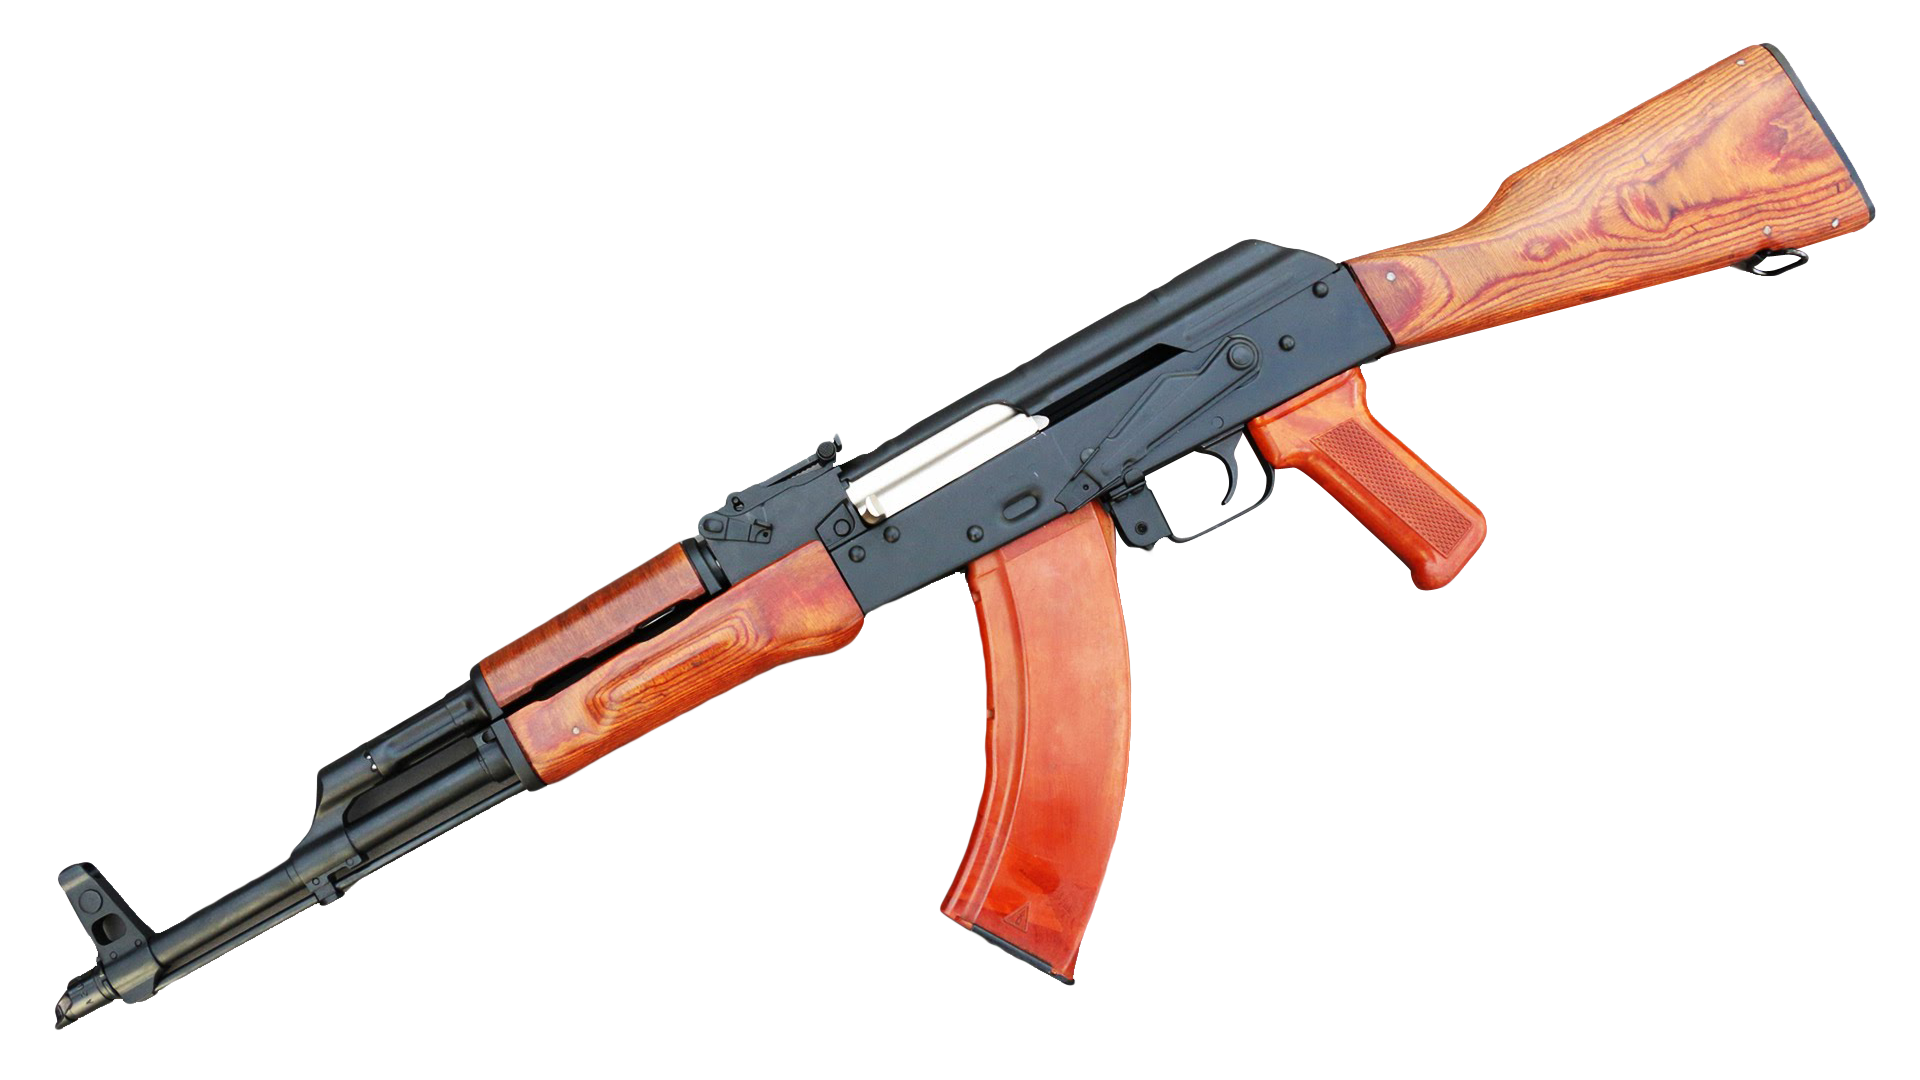 Pin by Victoria Parker on Wooden AK 47 Images in 2019.